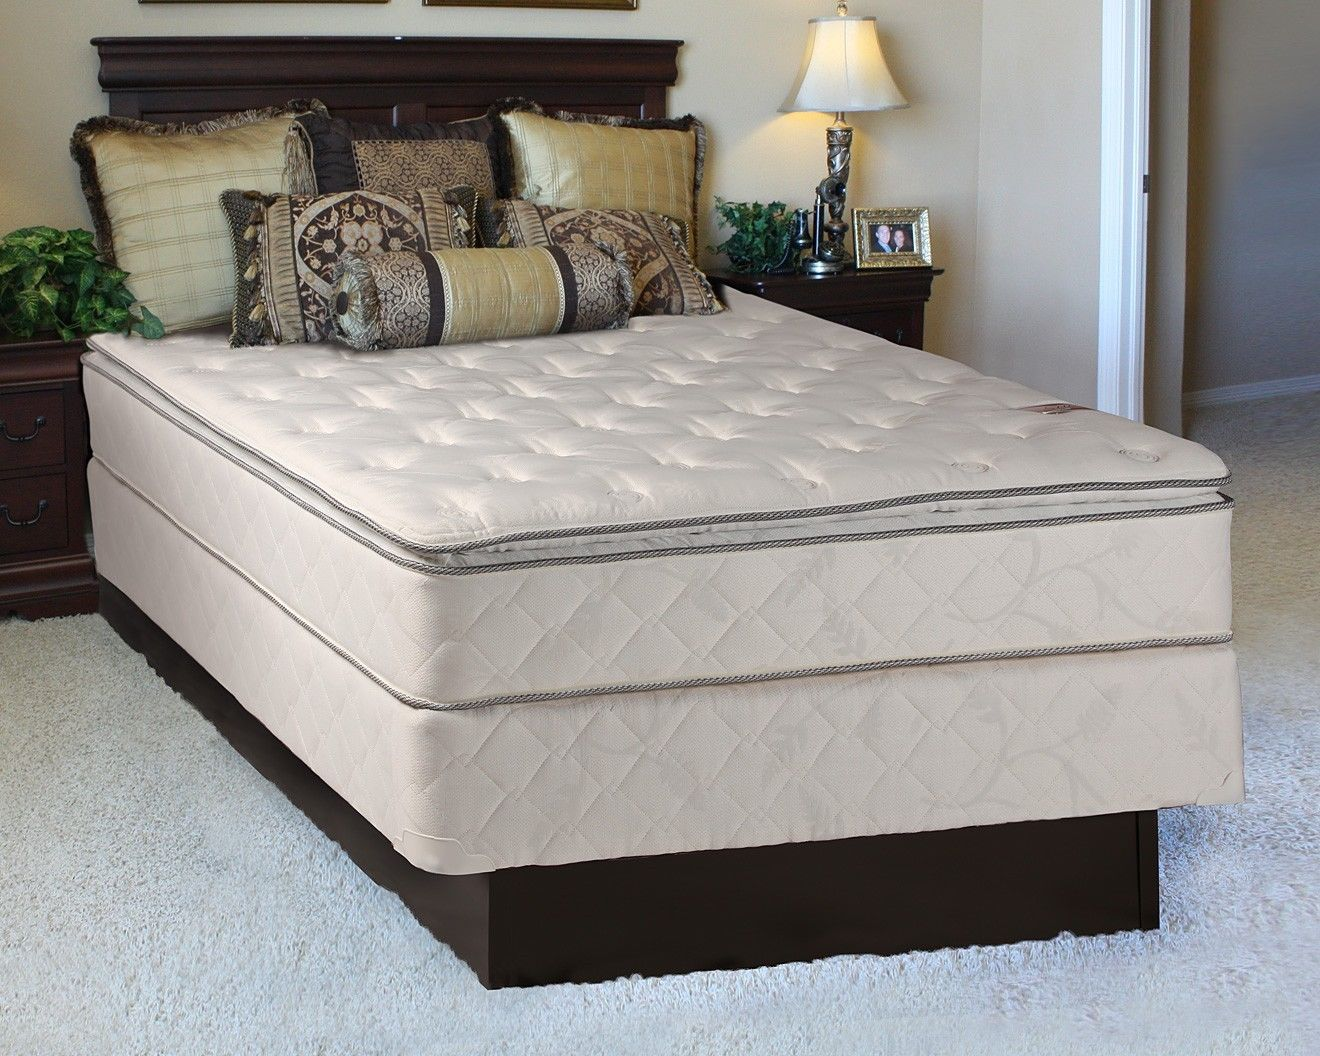 sunset plush inner spring pillowtop full size mattress and boxspring set 54 x75 x10 fully assembled orthopedic great back support and